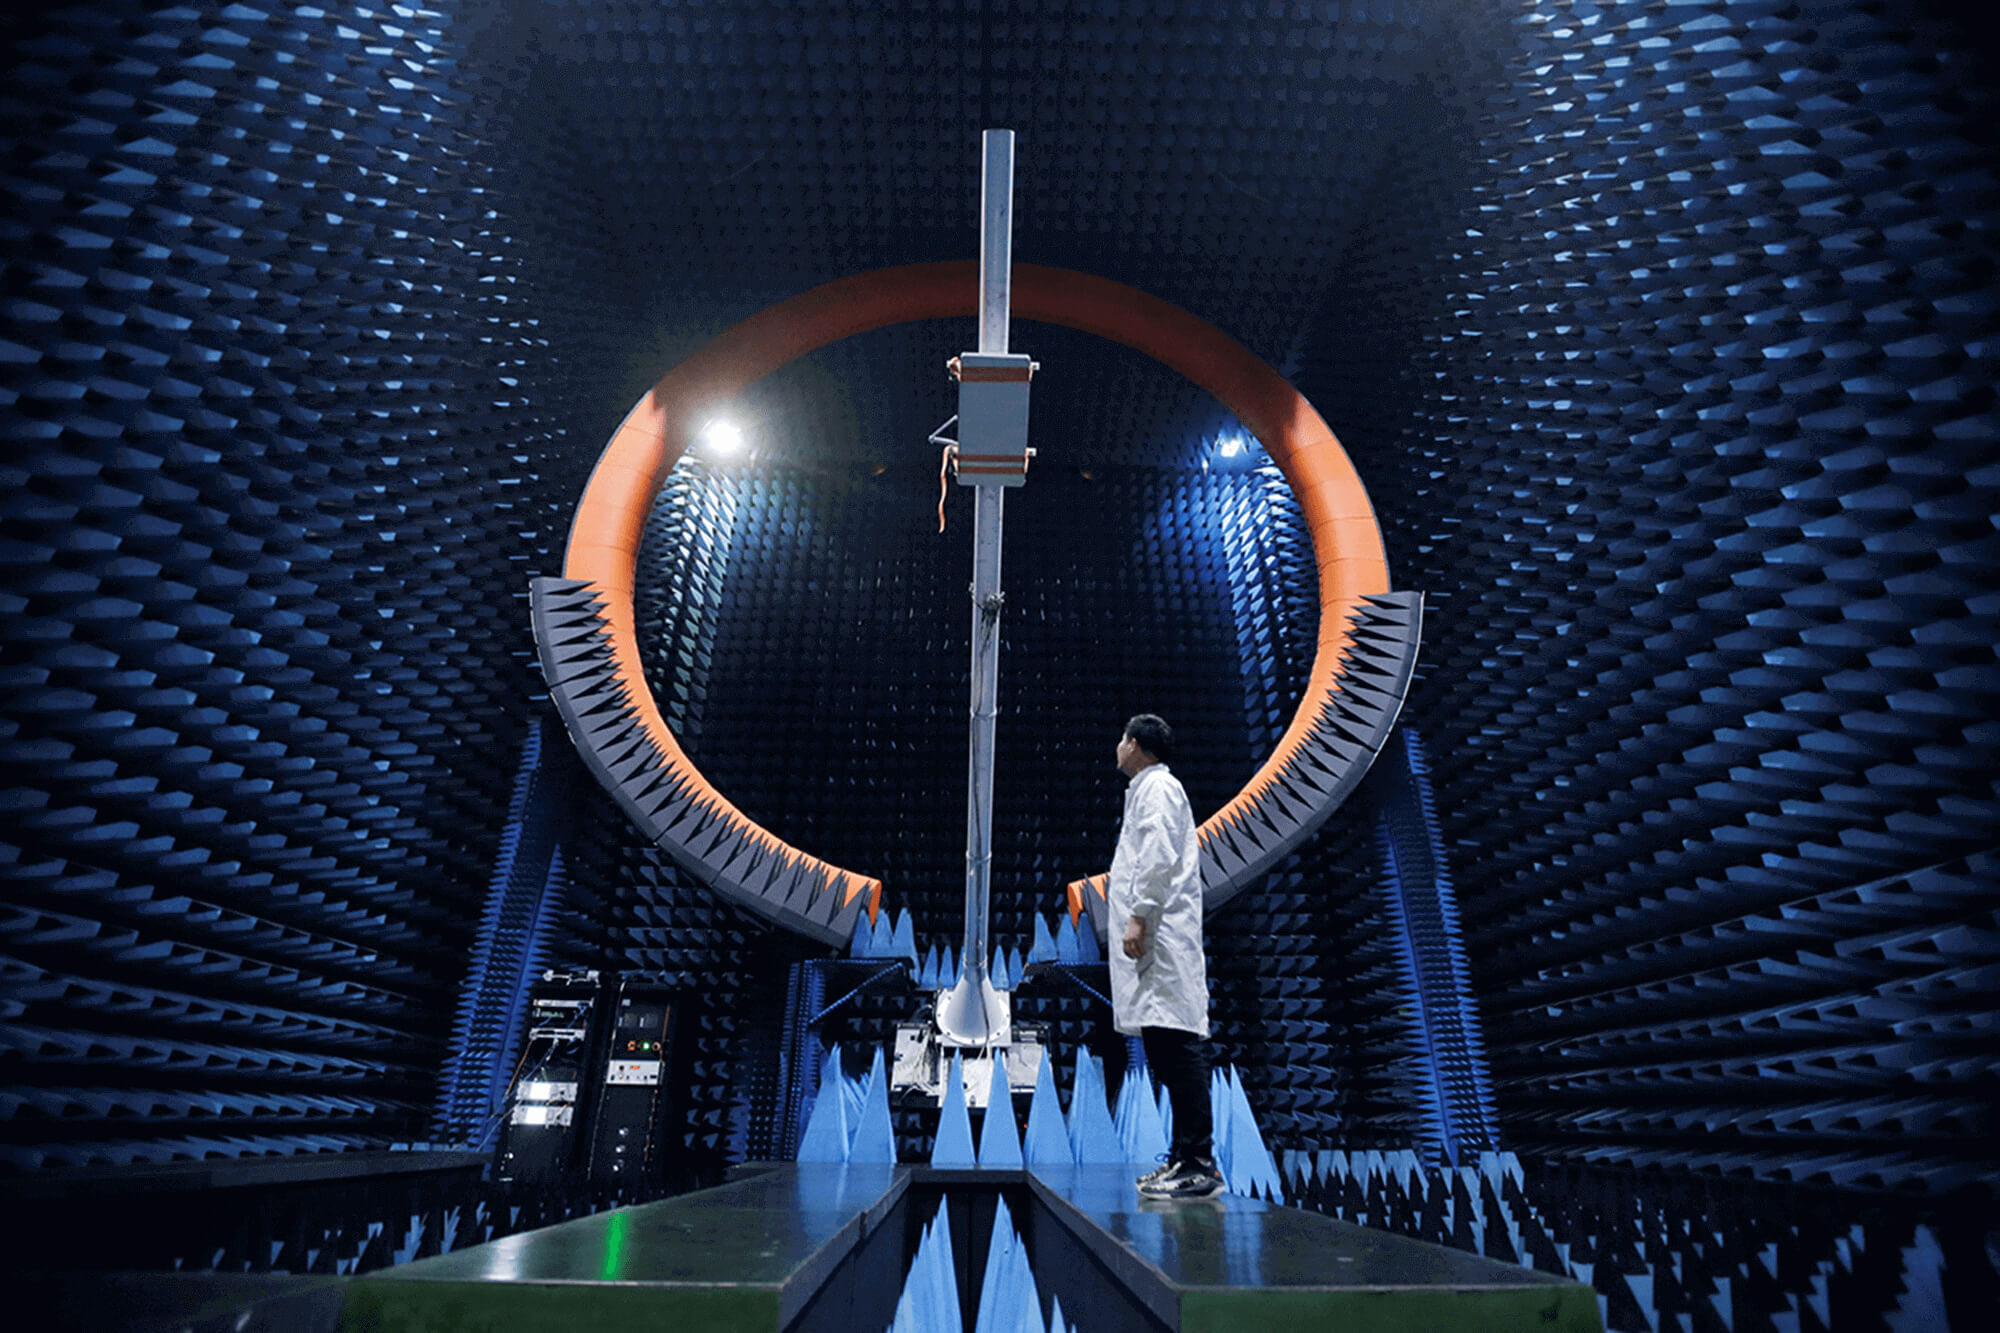 Engineer stands under a 5G antenna at a Huawei testing area in 2019. Huawei has received support as part of China's Digital Silk Road Initiative.